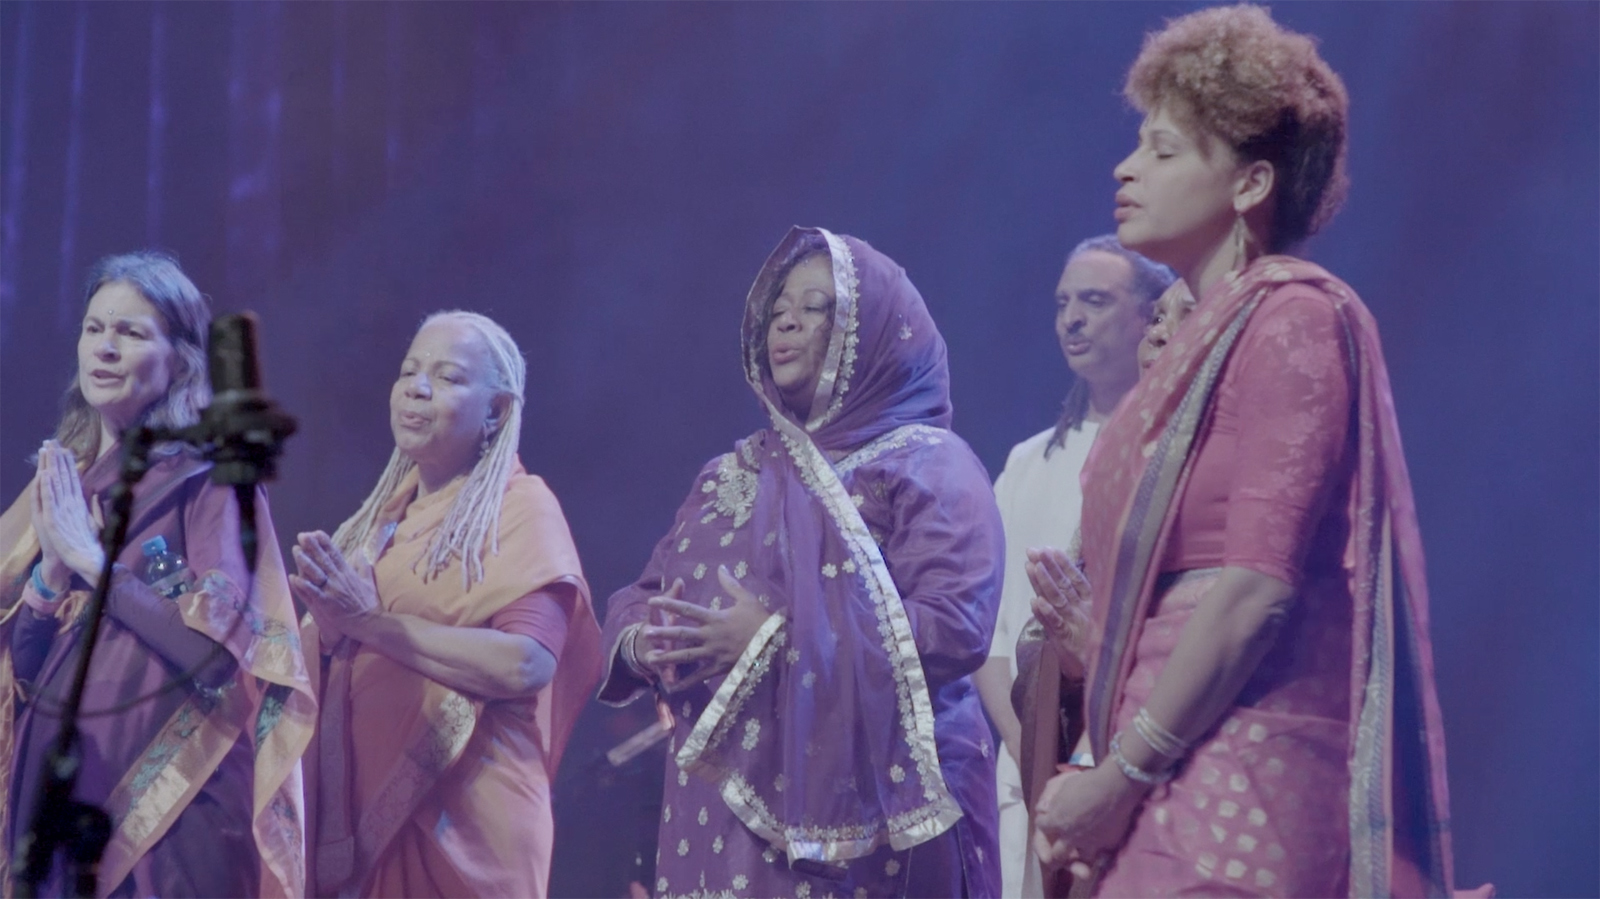 Video portrait: The Ecstatic Music of Alice Coltrane at Le Guess Who? 2017